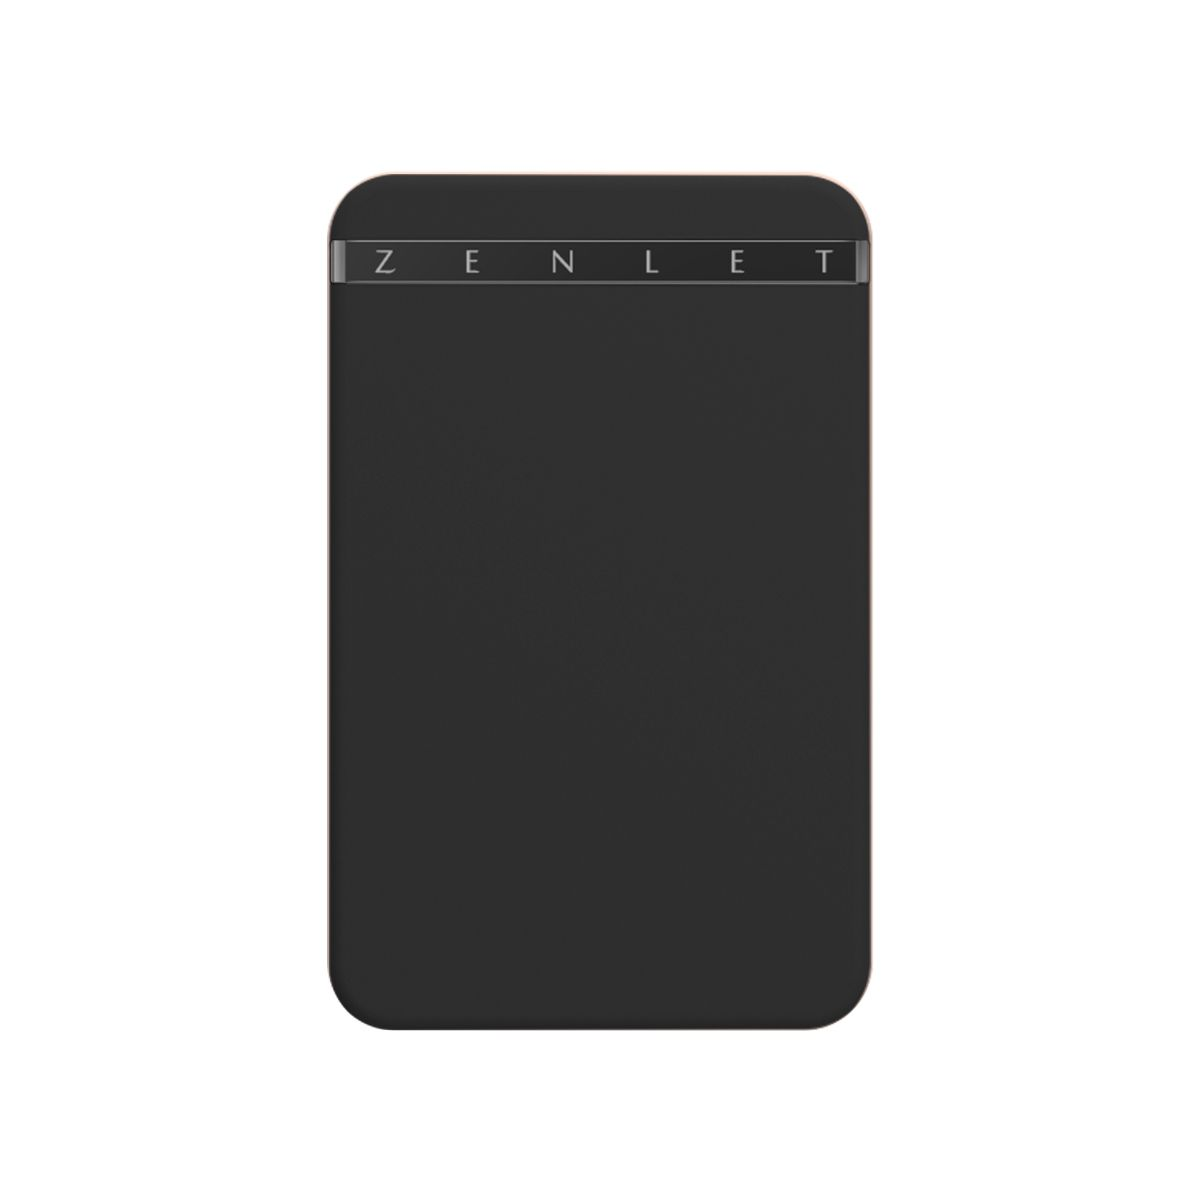 ZENLET The Ingenious Wallet - Black